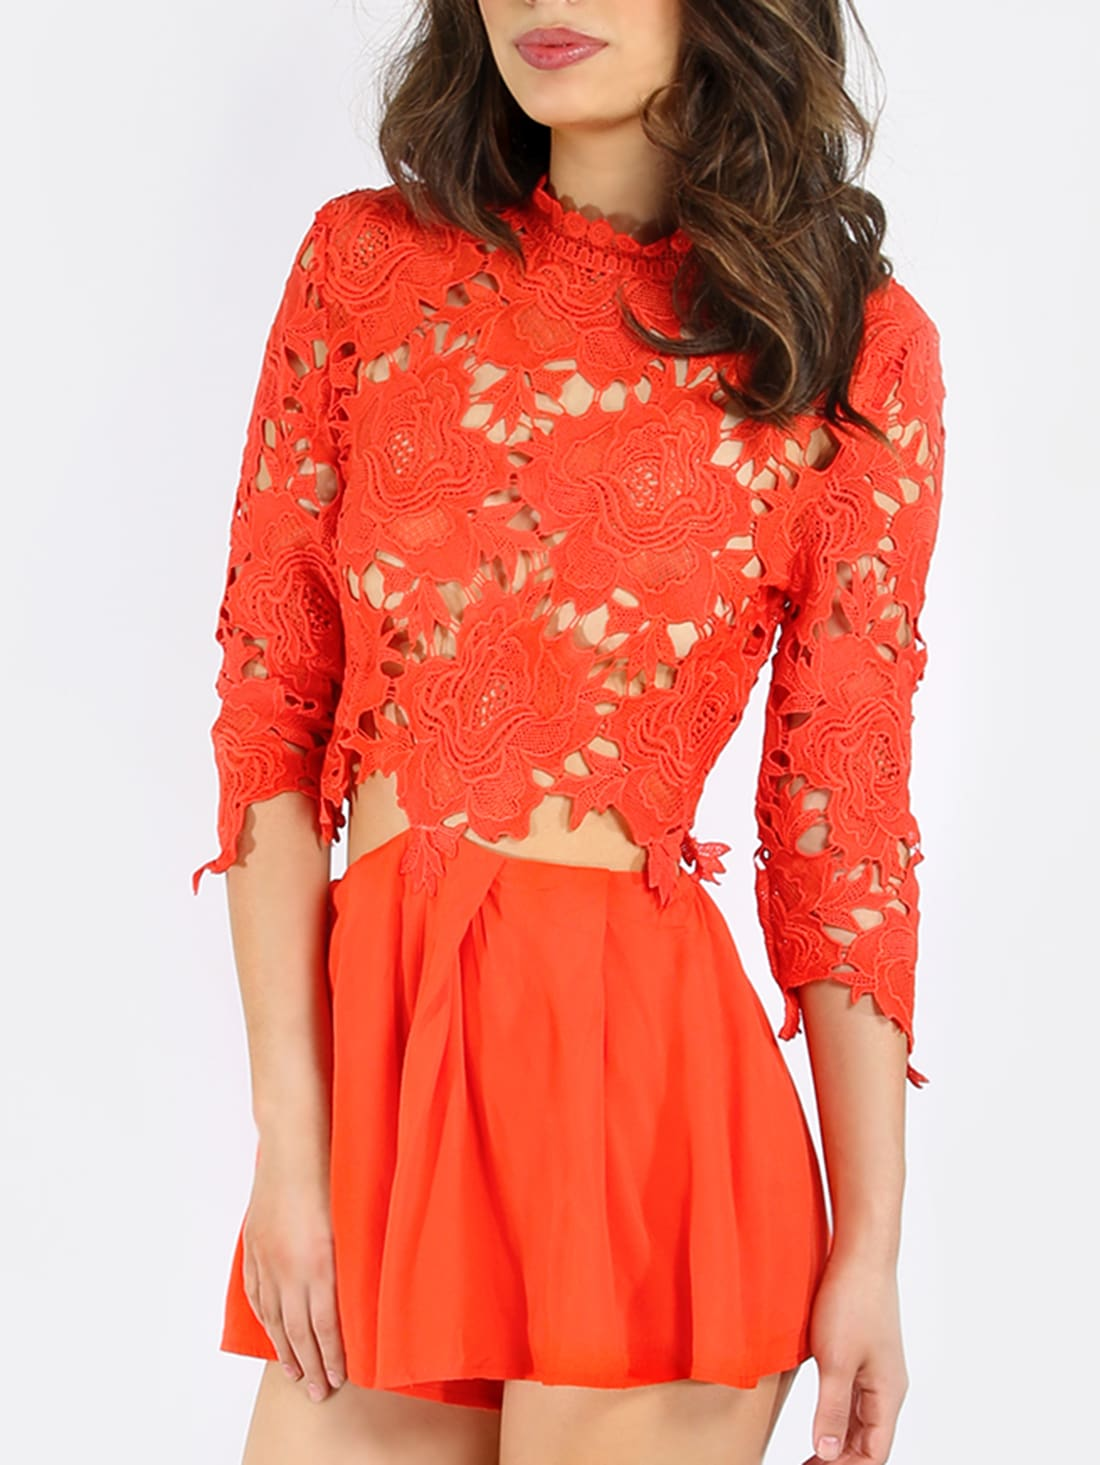 Crochet Jumpsuit : Orange Red High Neck Crochet Lace Jumpsuit -SheIn(Sheinside)